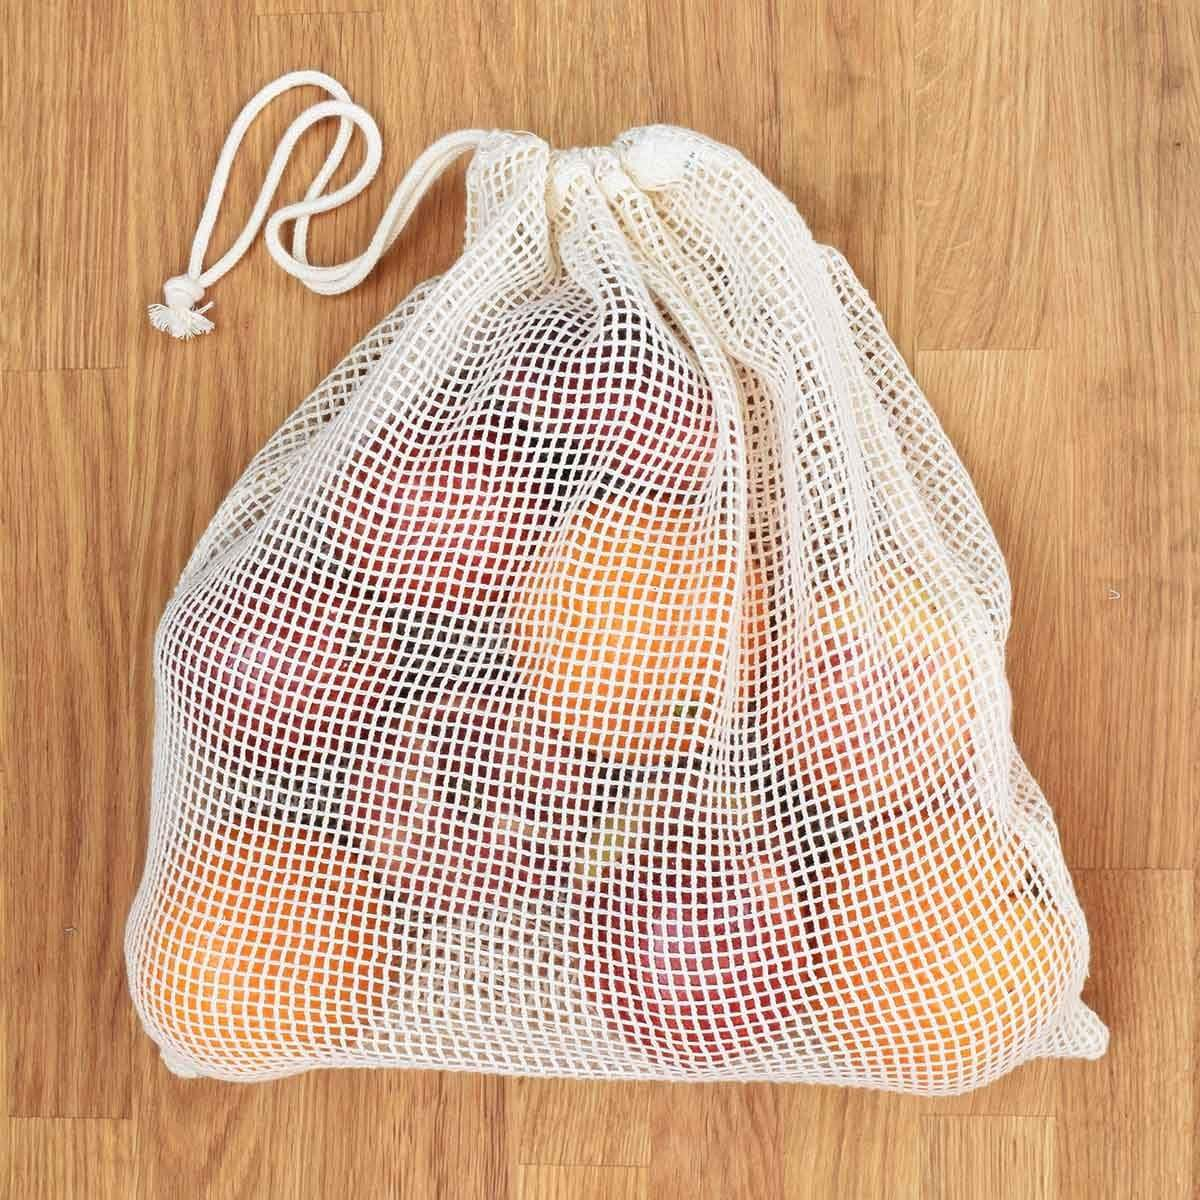 Nextouter 9 Pack Reusable Vegetable Bag